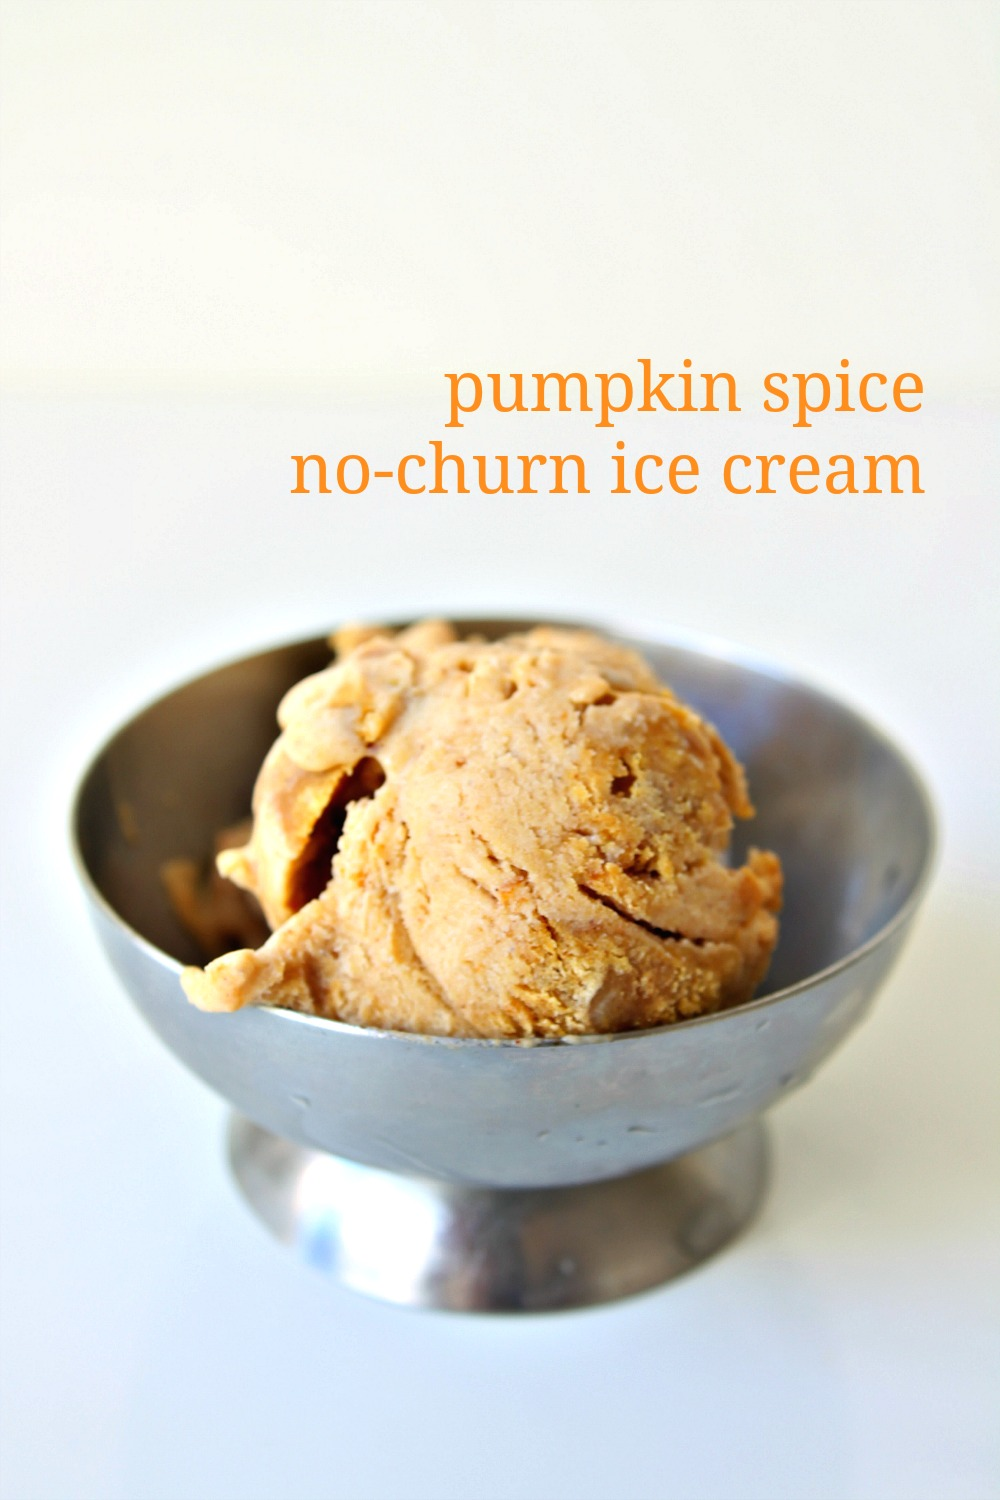 Pumpkin Spice Ice Cream (No-Churn) 3--120214